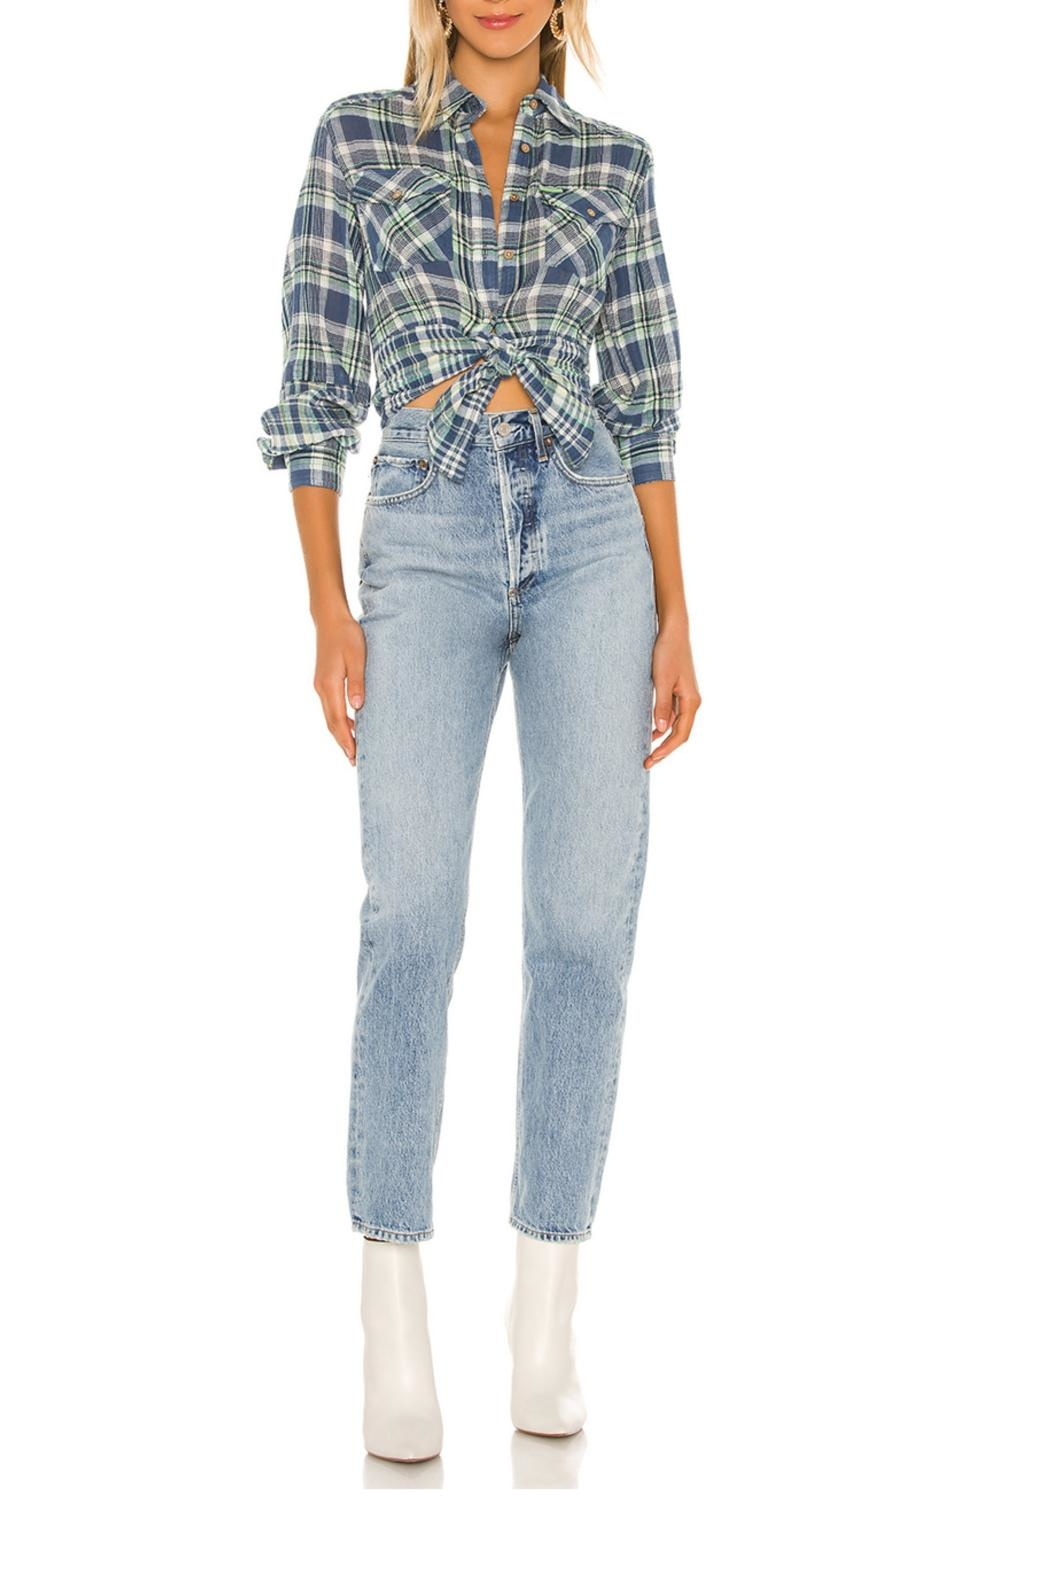 Free People First Bloom Plaid Top - Main Image